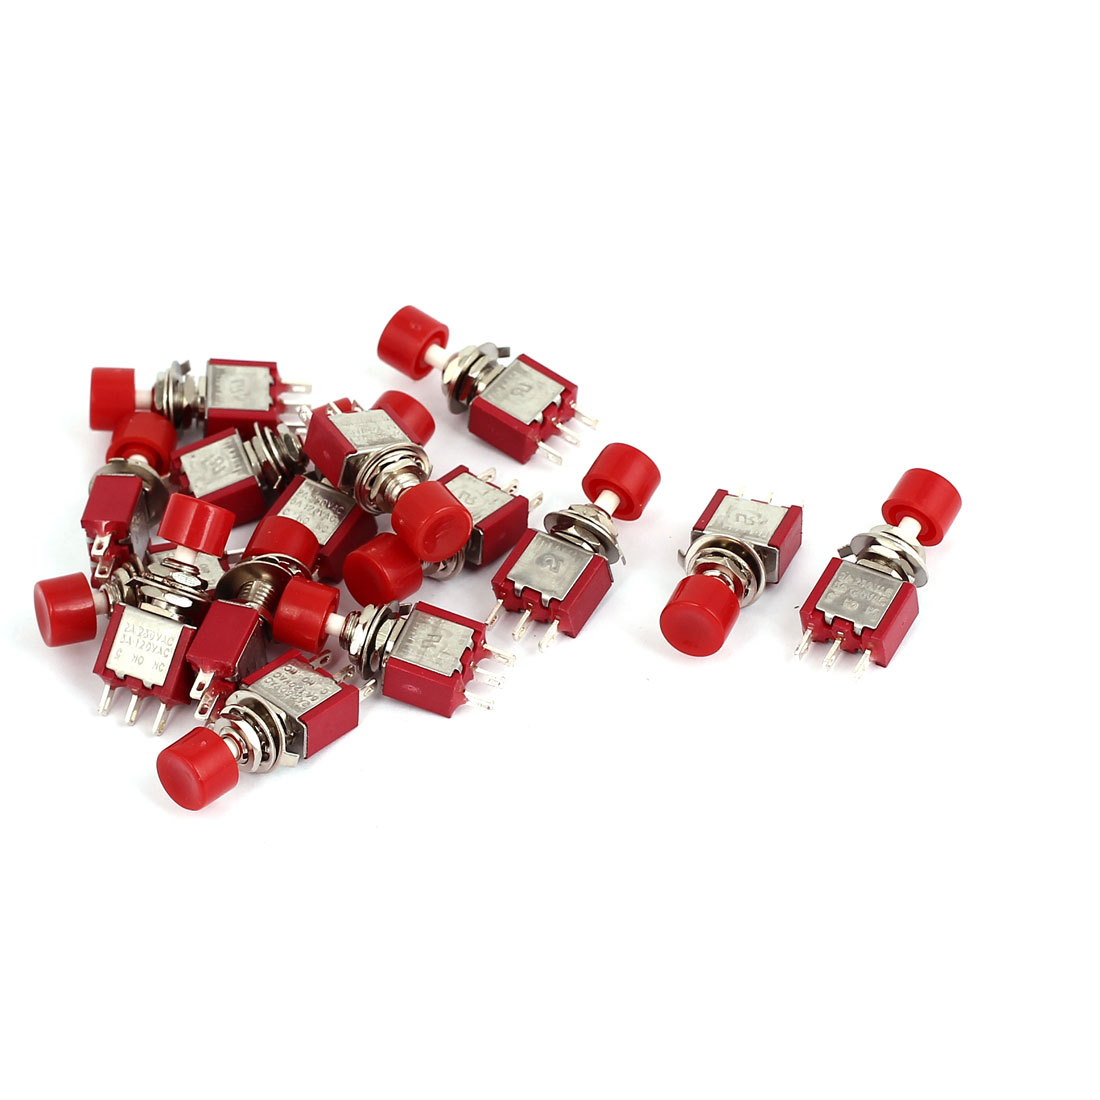 AC 120V 5A/ AC 250V 2A SPDT 2 Positions Momentary Mini Push Button Switch 15Pcs